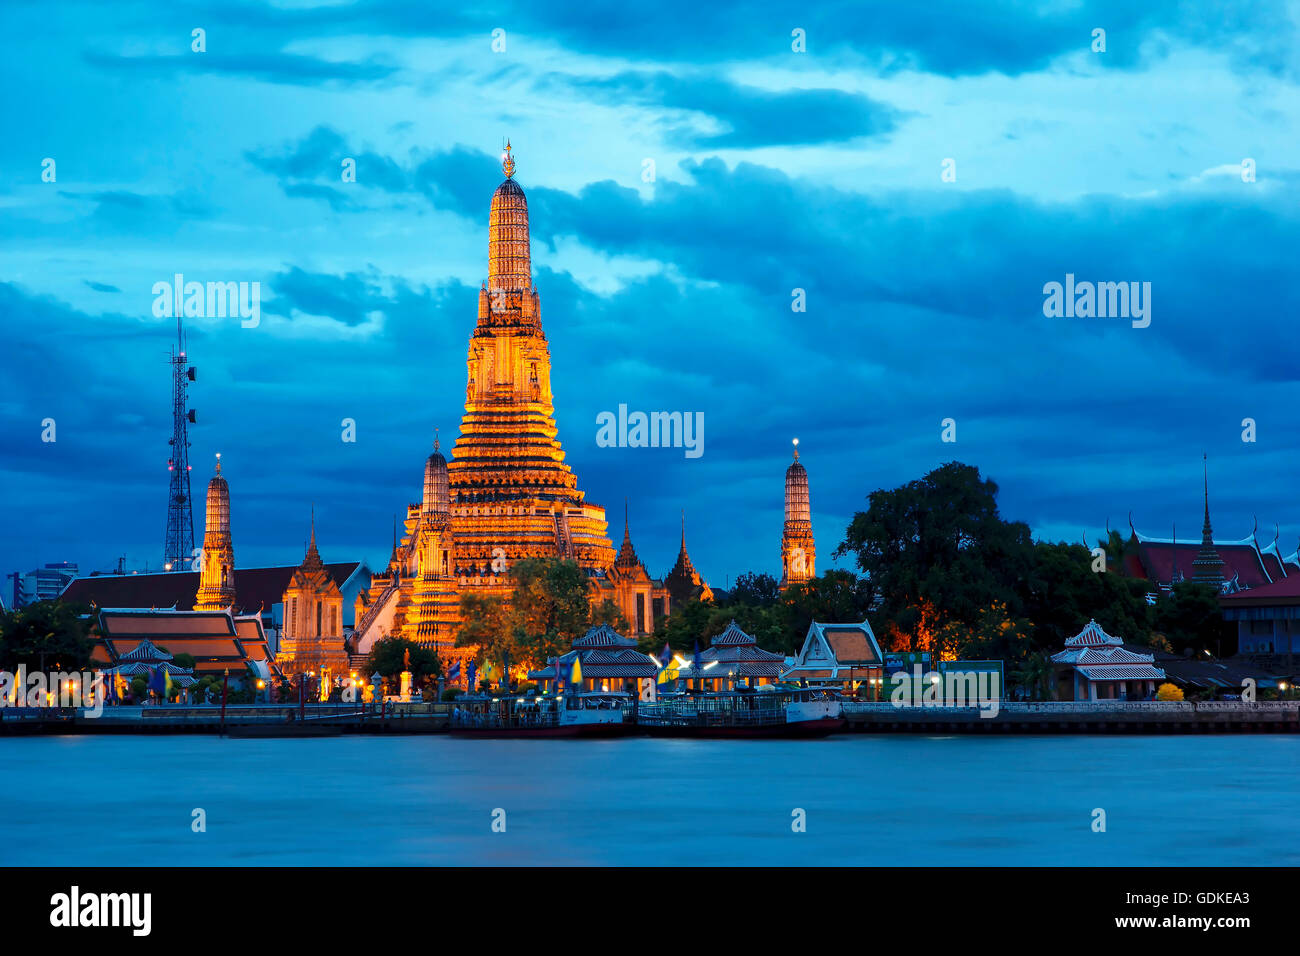 Wat Arun is the fascinating culture. A major tourist attraction in Bangkok, Thailand. - Stock Image